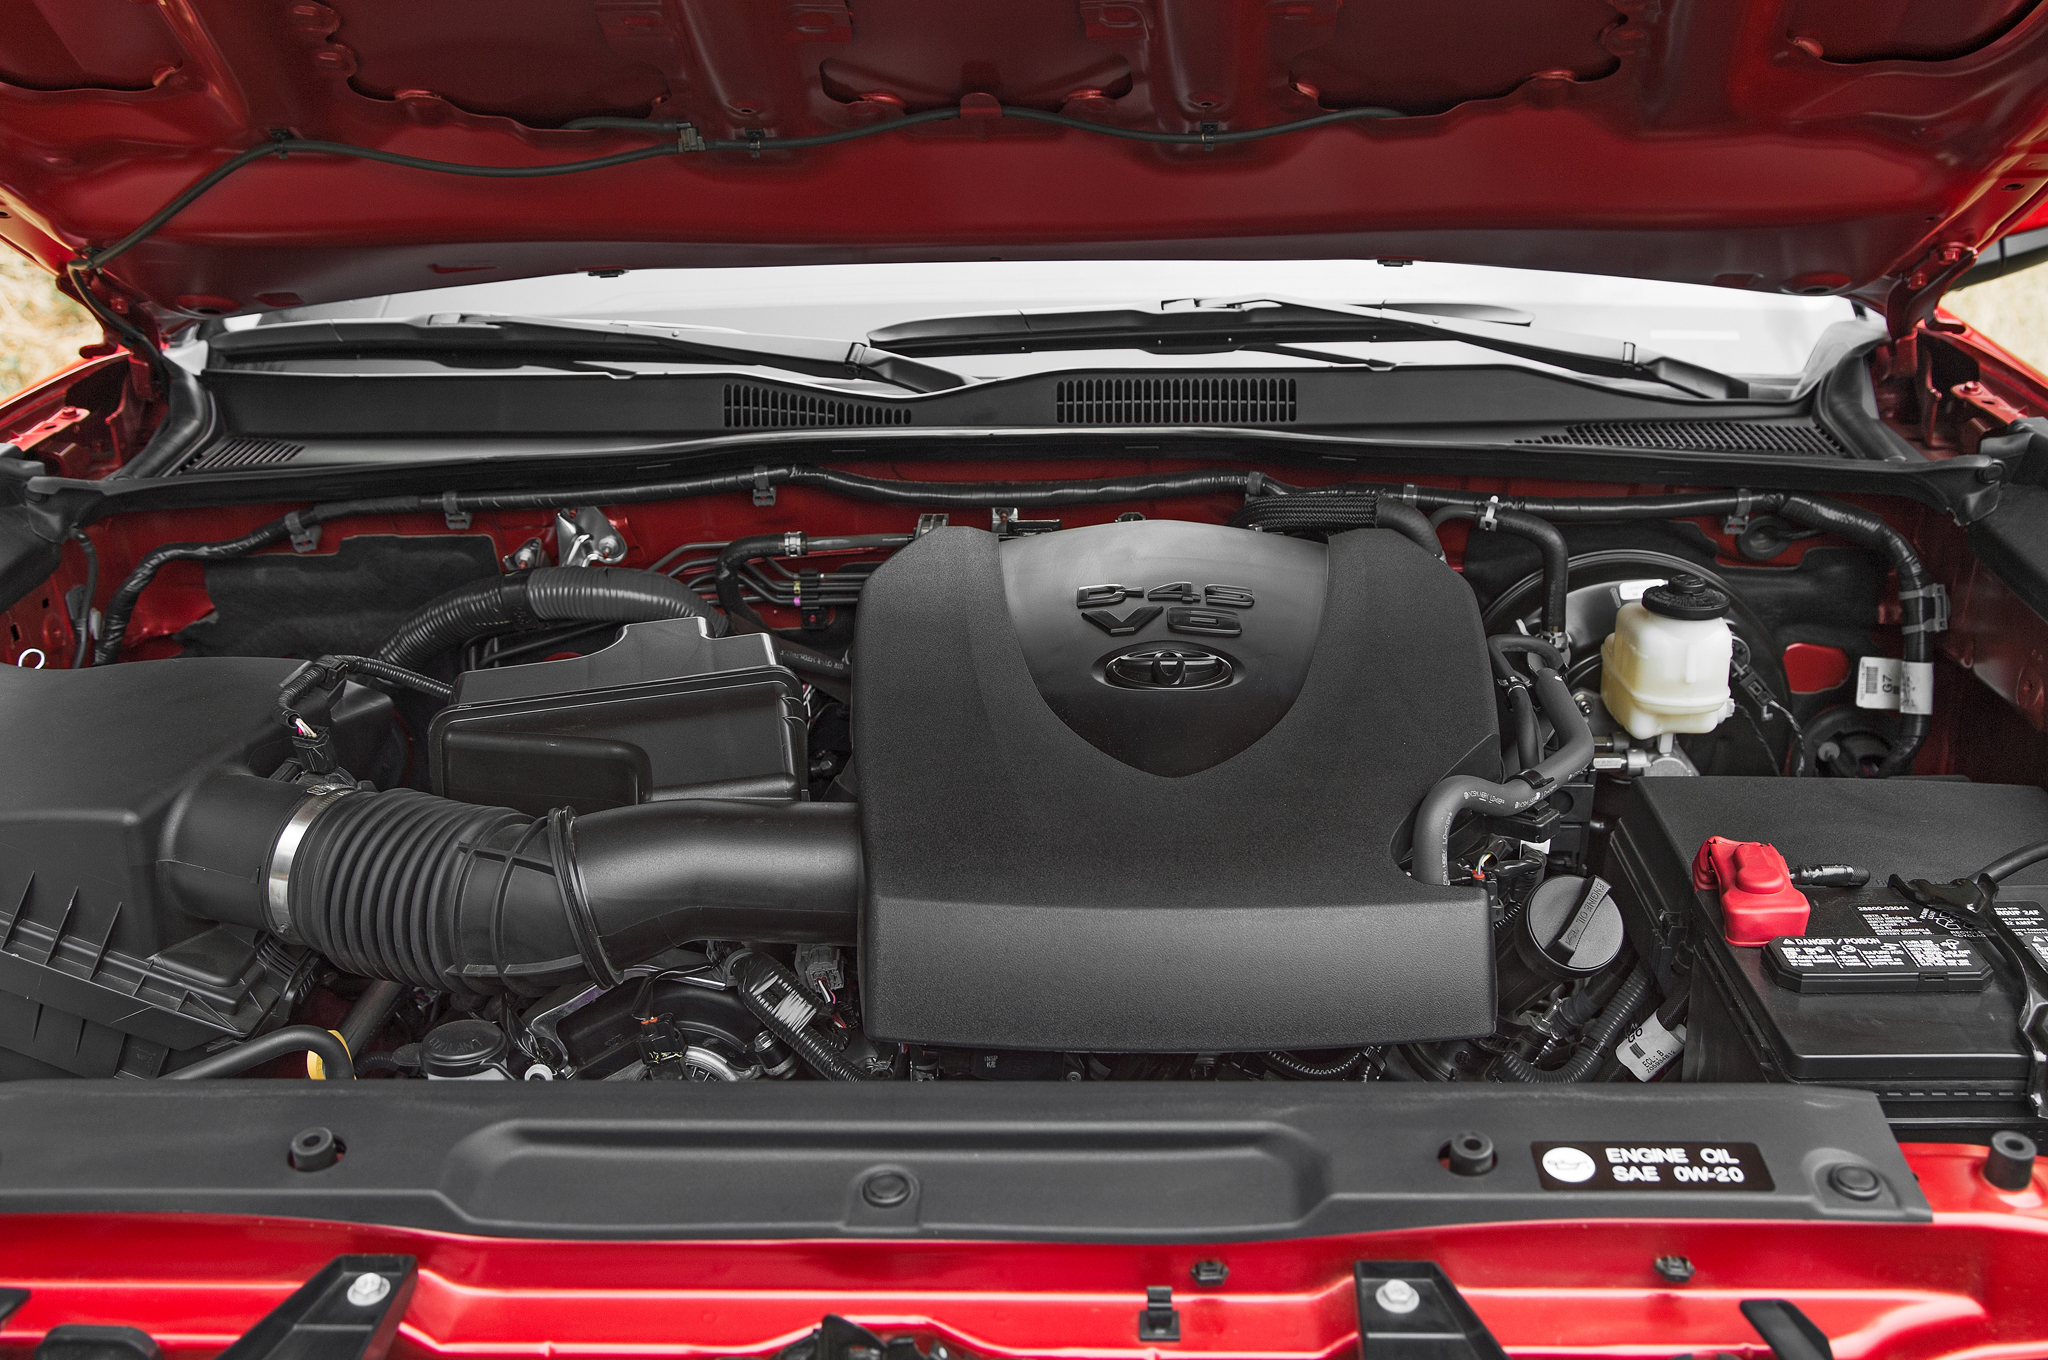 Toyota tacoma engine compartment diagram residential jpg 2048x1360 2002  toyota sienna engine diagram